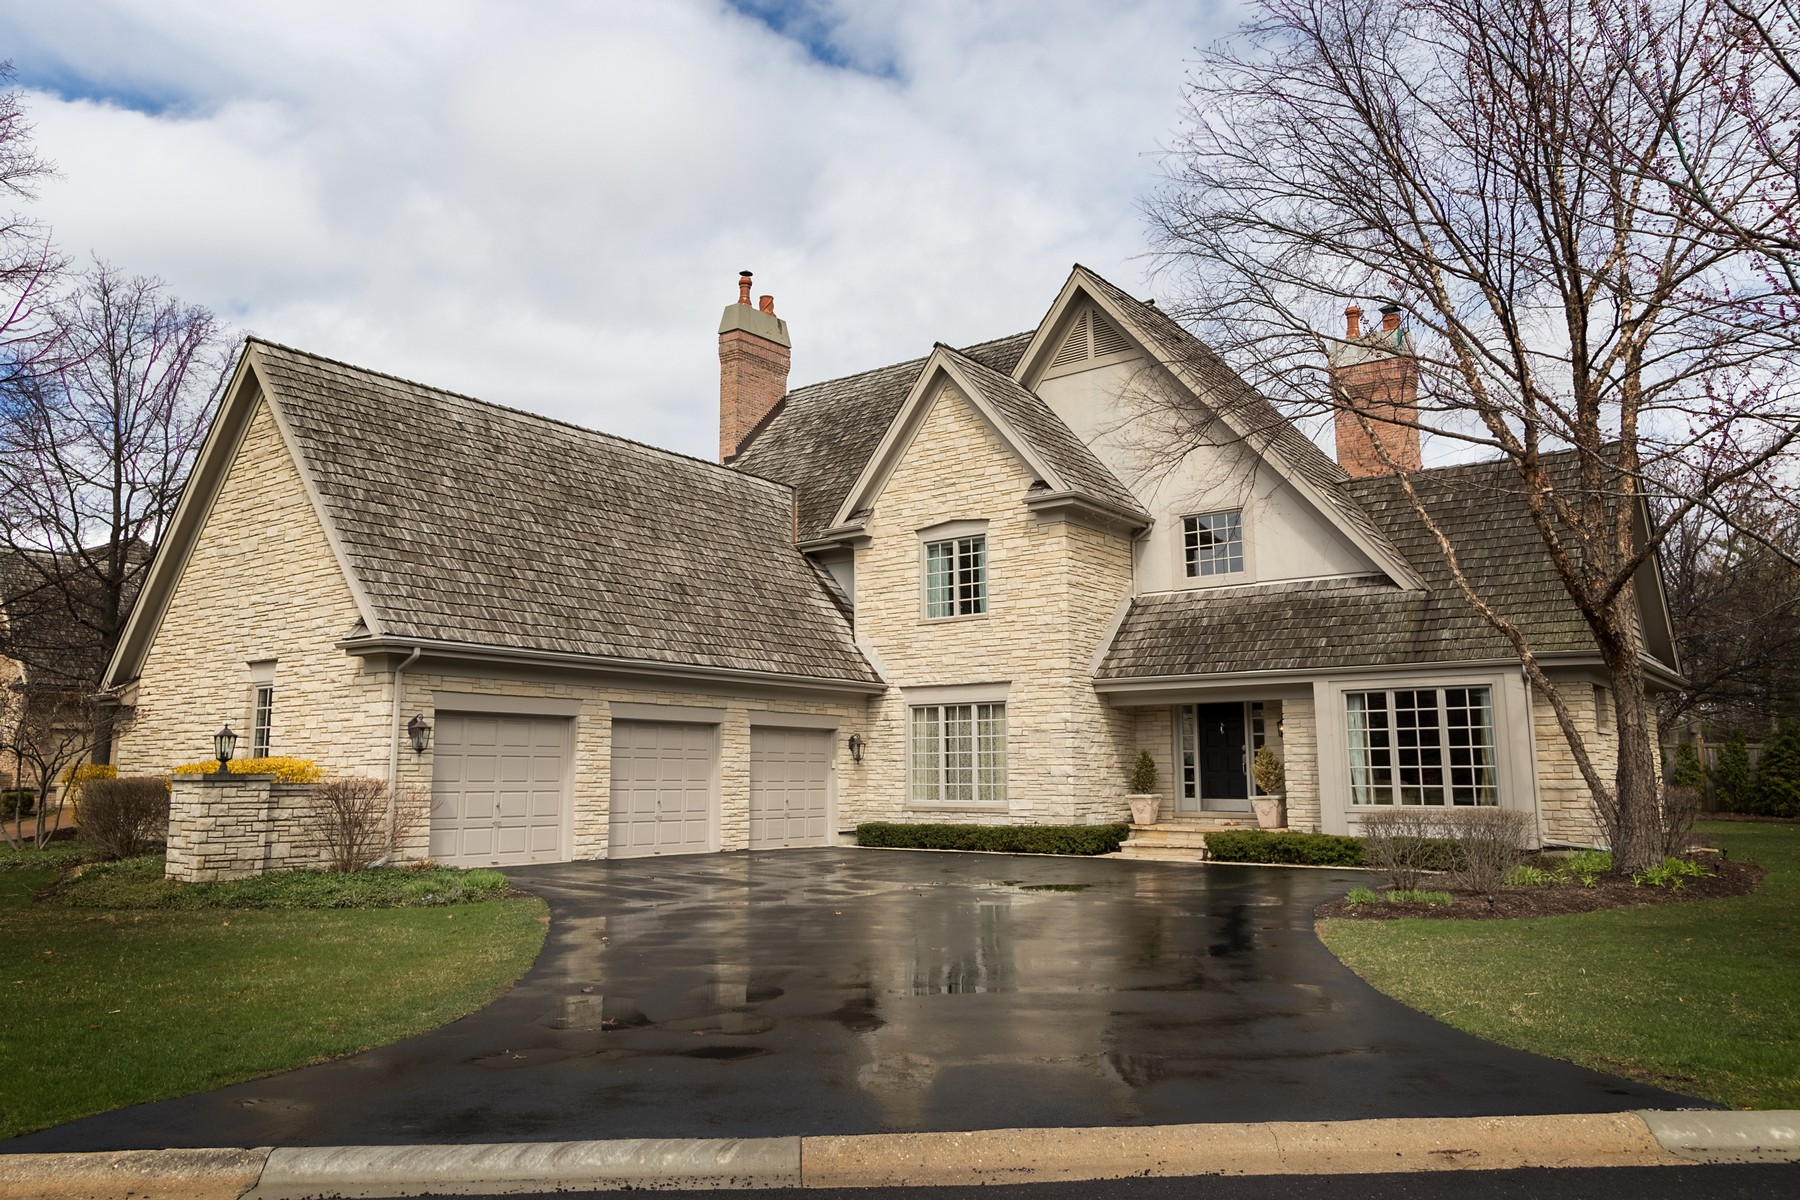 Single Family Home for Sale at Meticulously Maintained Home 107 Lakeside Court, North Barrington, Illinois, 60010 United States